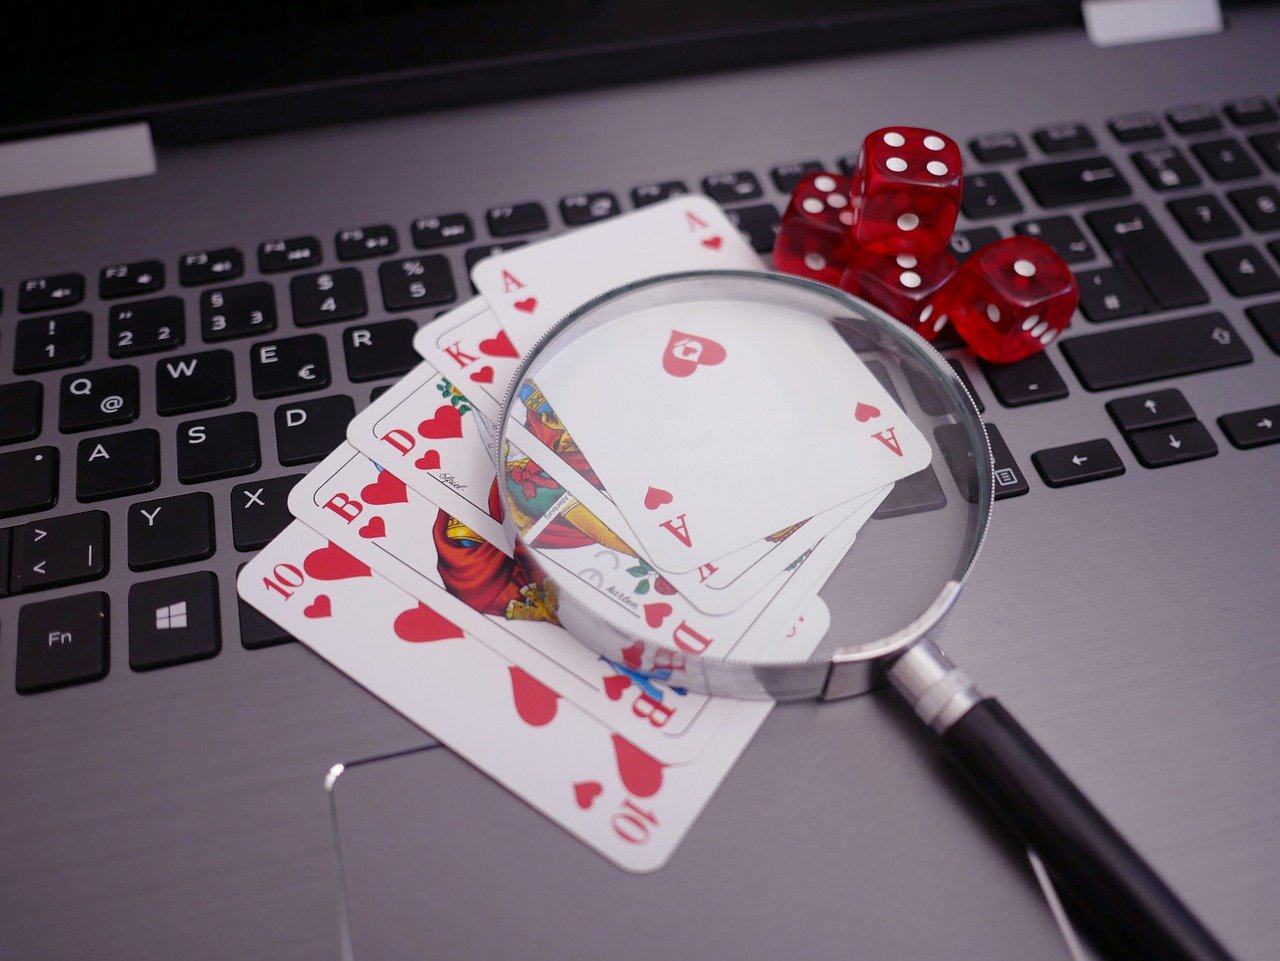 What advantages an online gambling player will experience while playing online Judi?